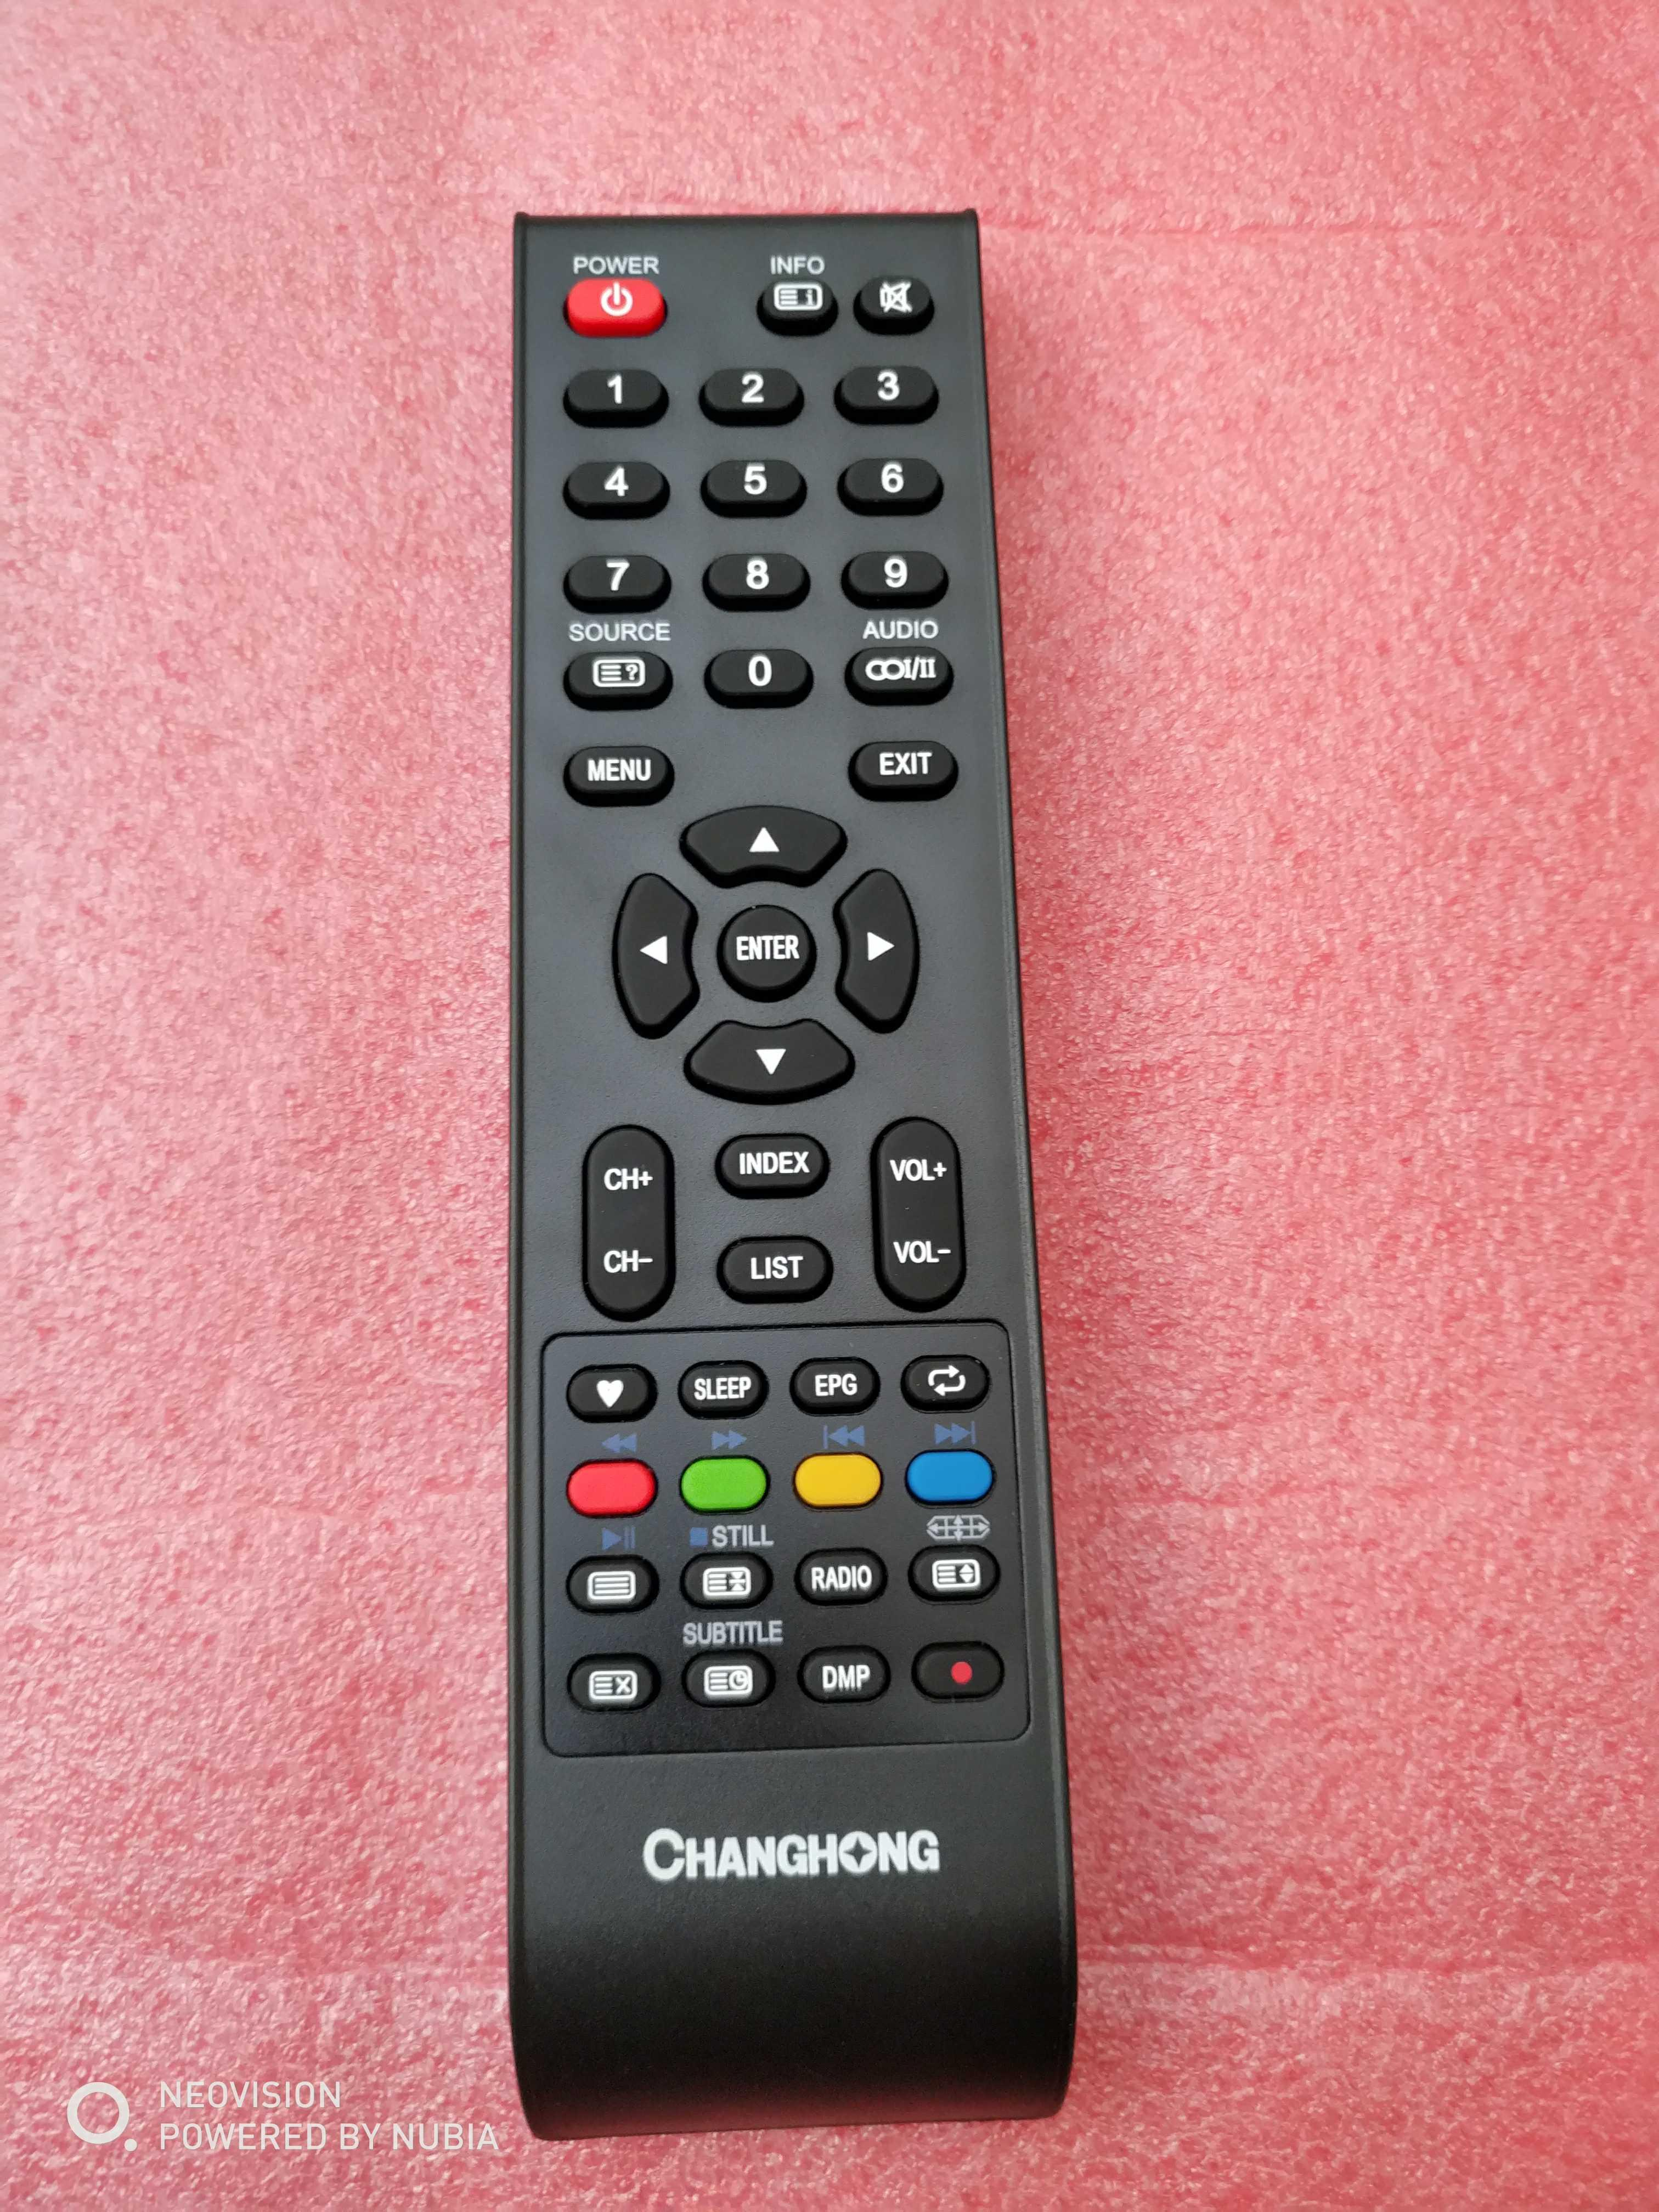 Origional Product Changhong TV Remote GCBLTV20A-C54-DC Remote Control